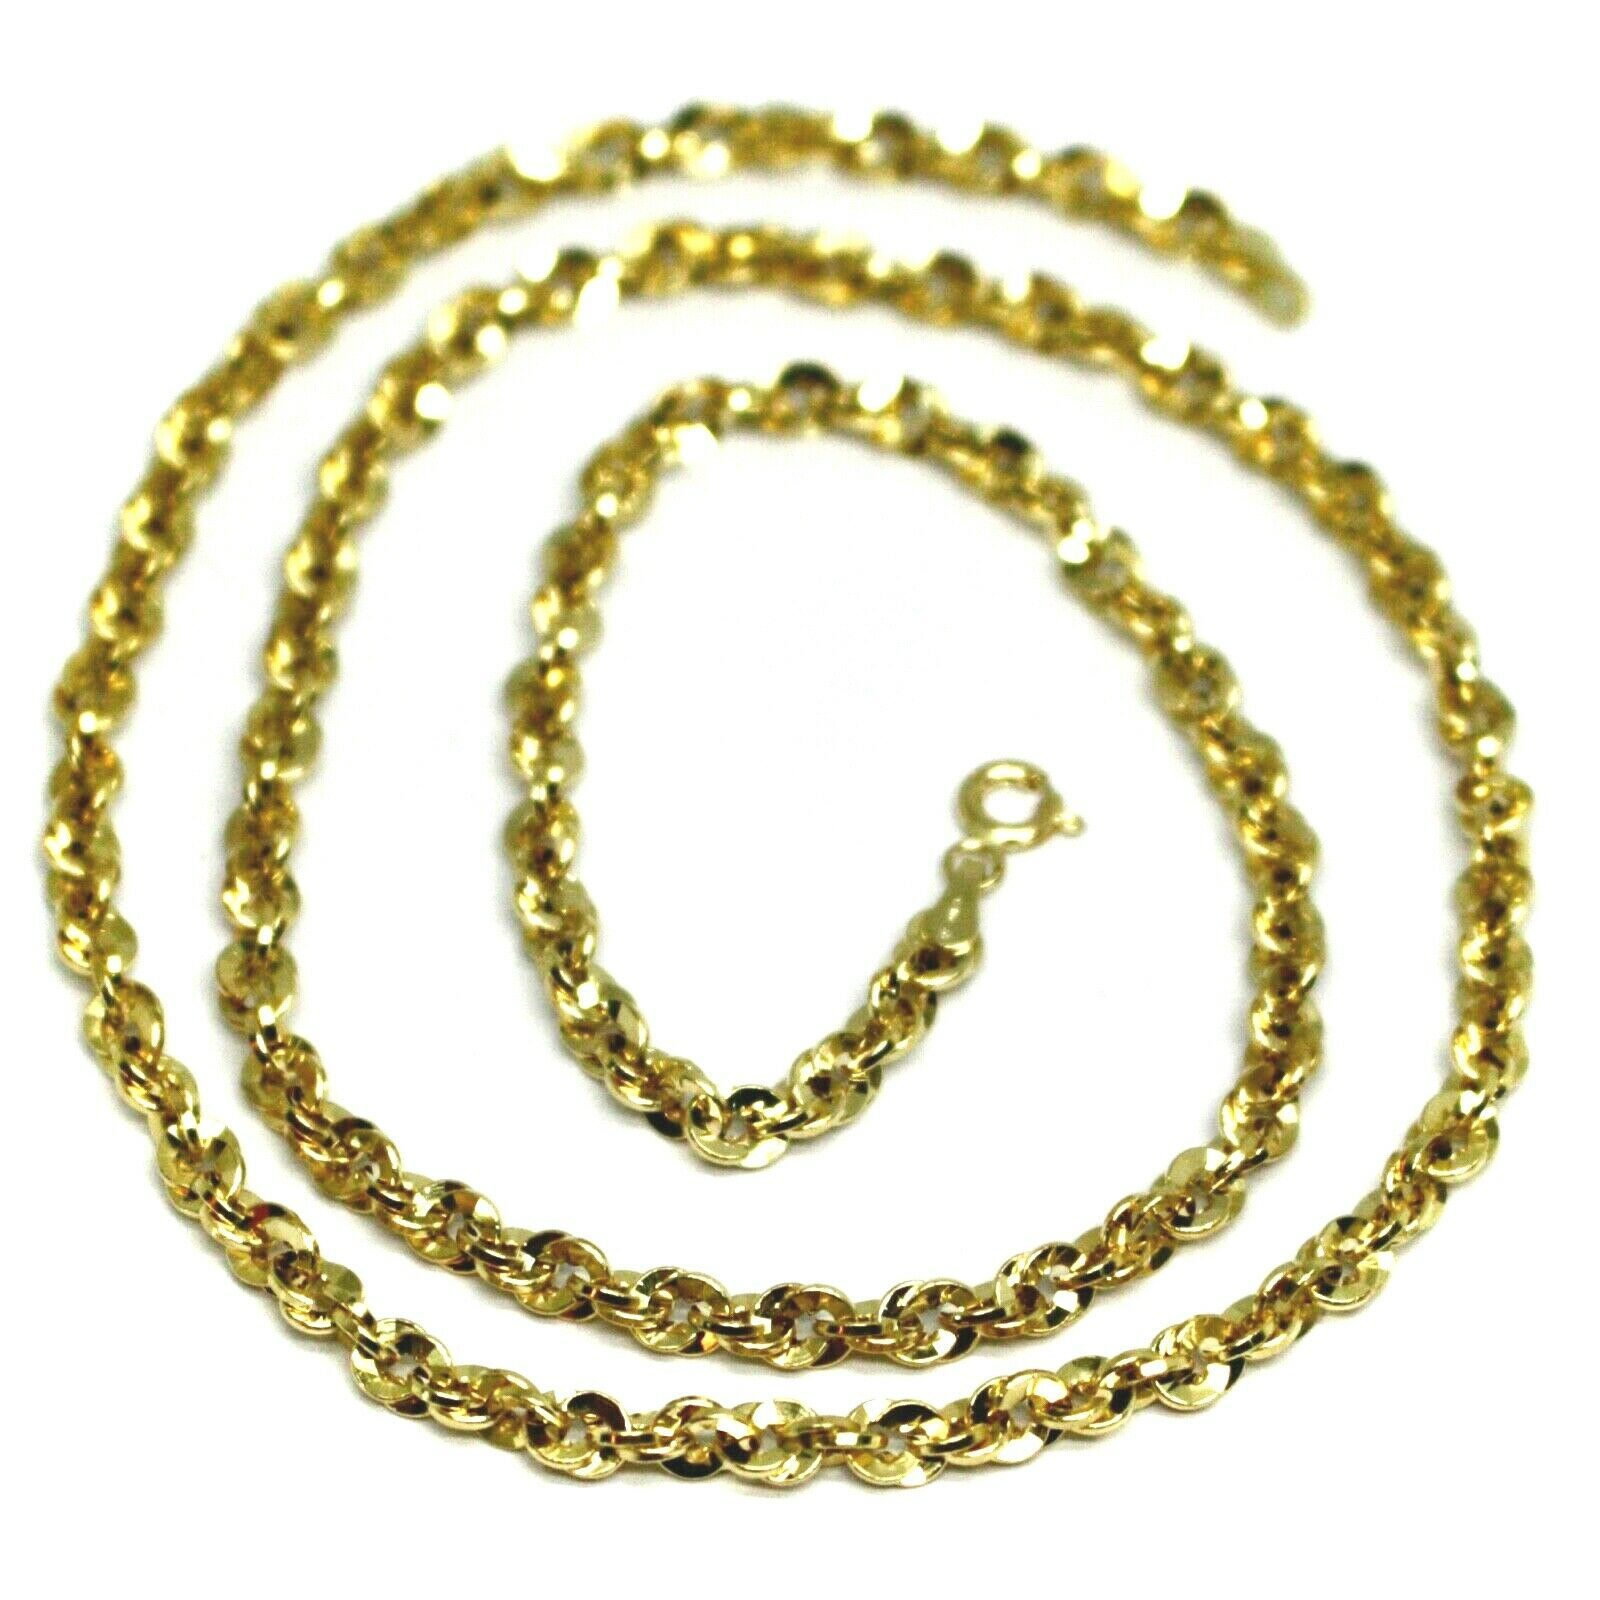 18K YELLOW GOLD ROPE CHAIN, 19.7 INCHES BRAIDED INFINITE FACETED ALTERNATE LINK